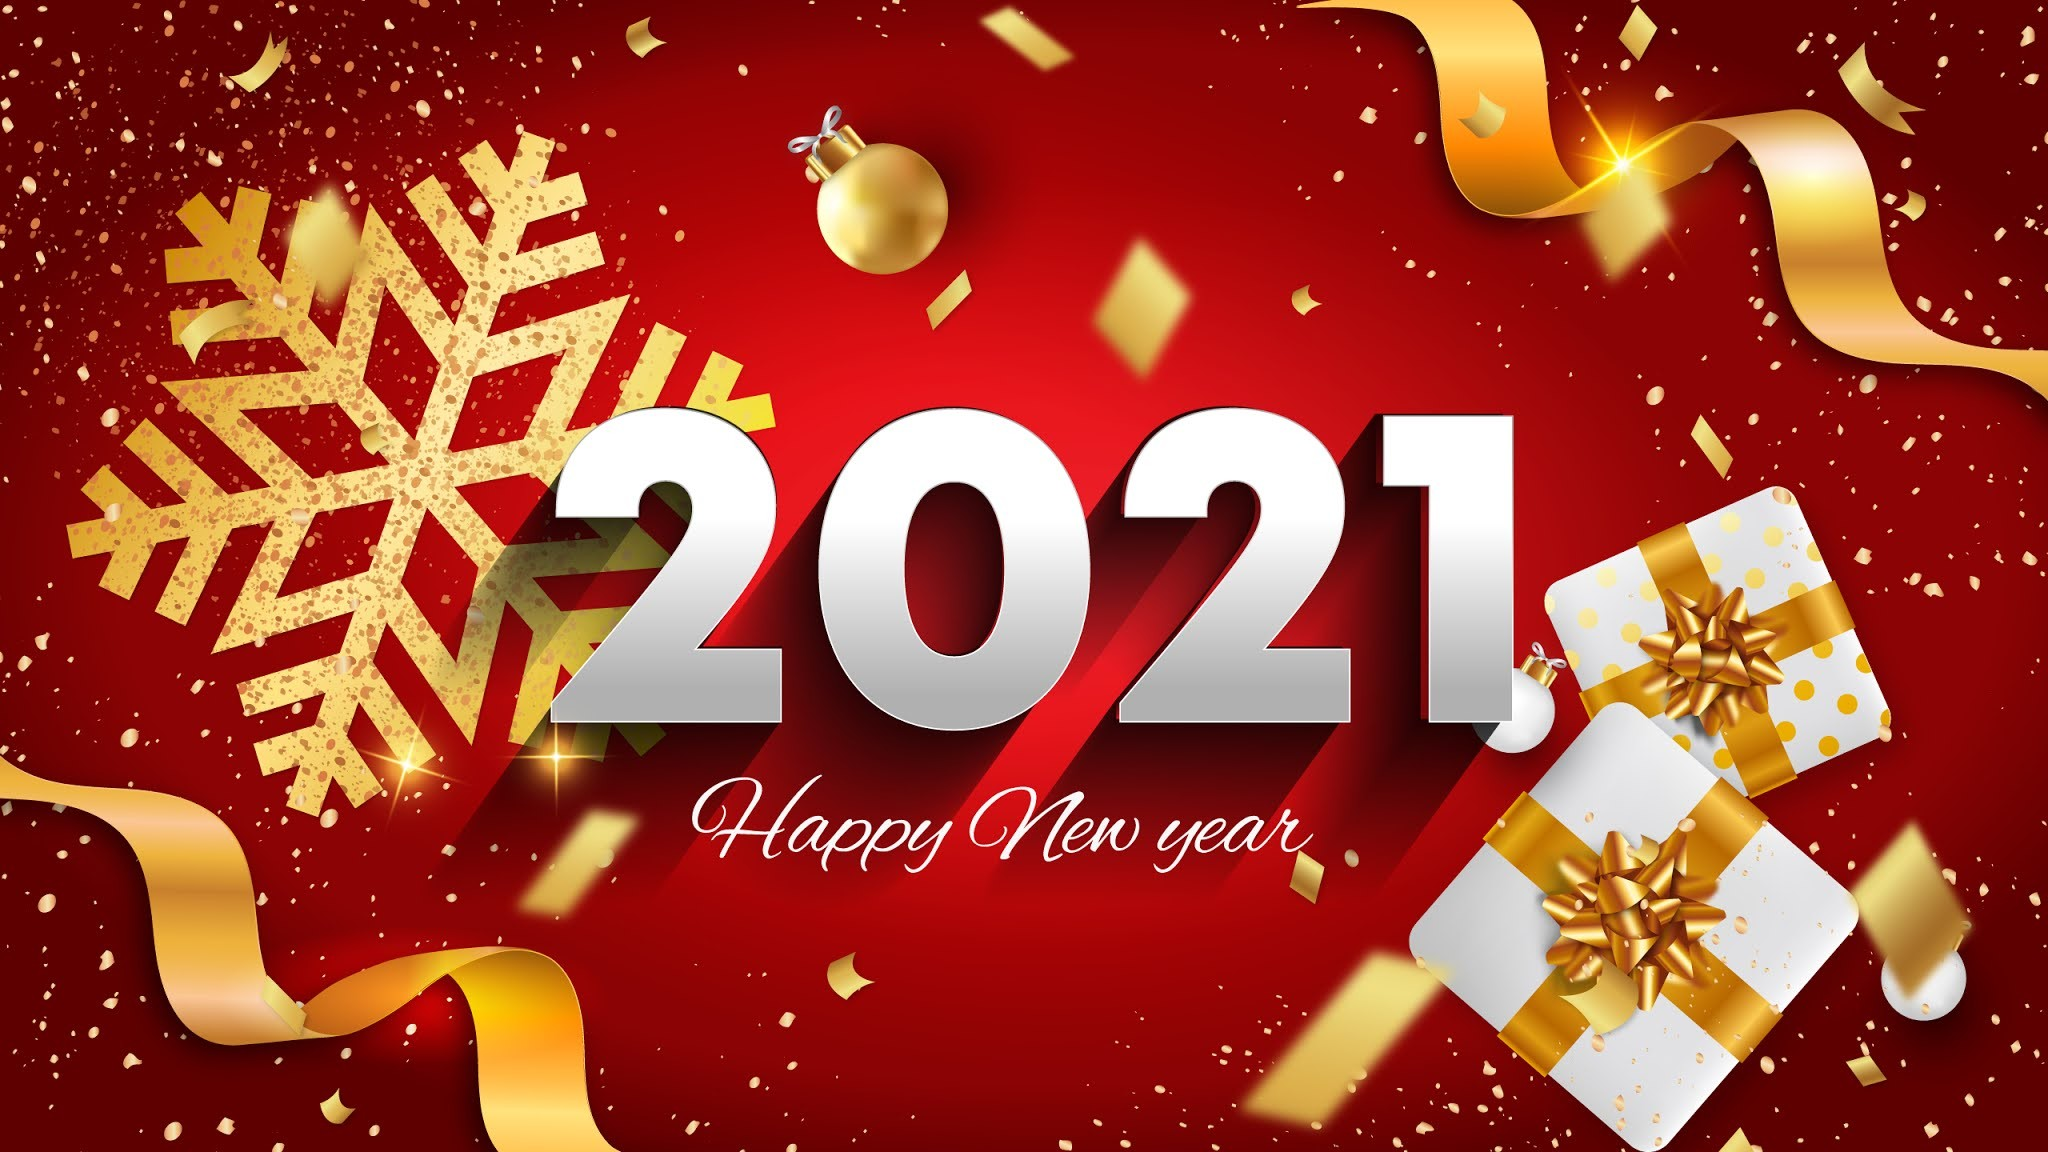 New Year 2021 Free Wallpaper